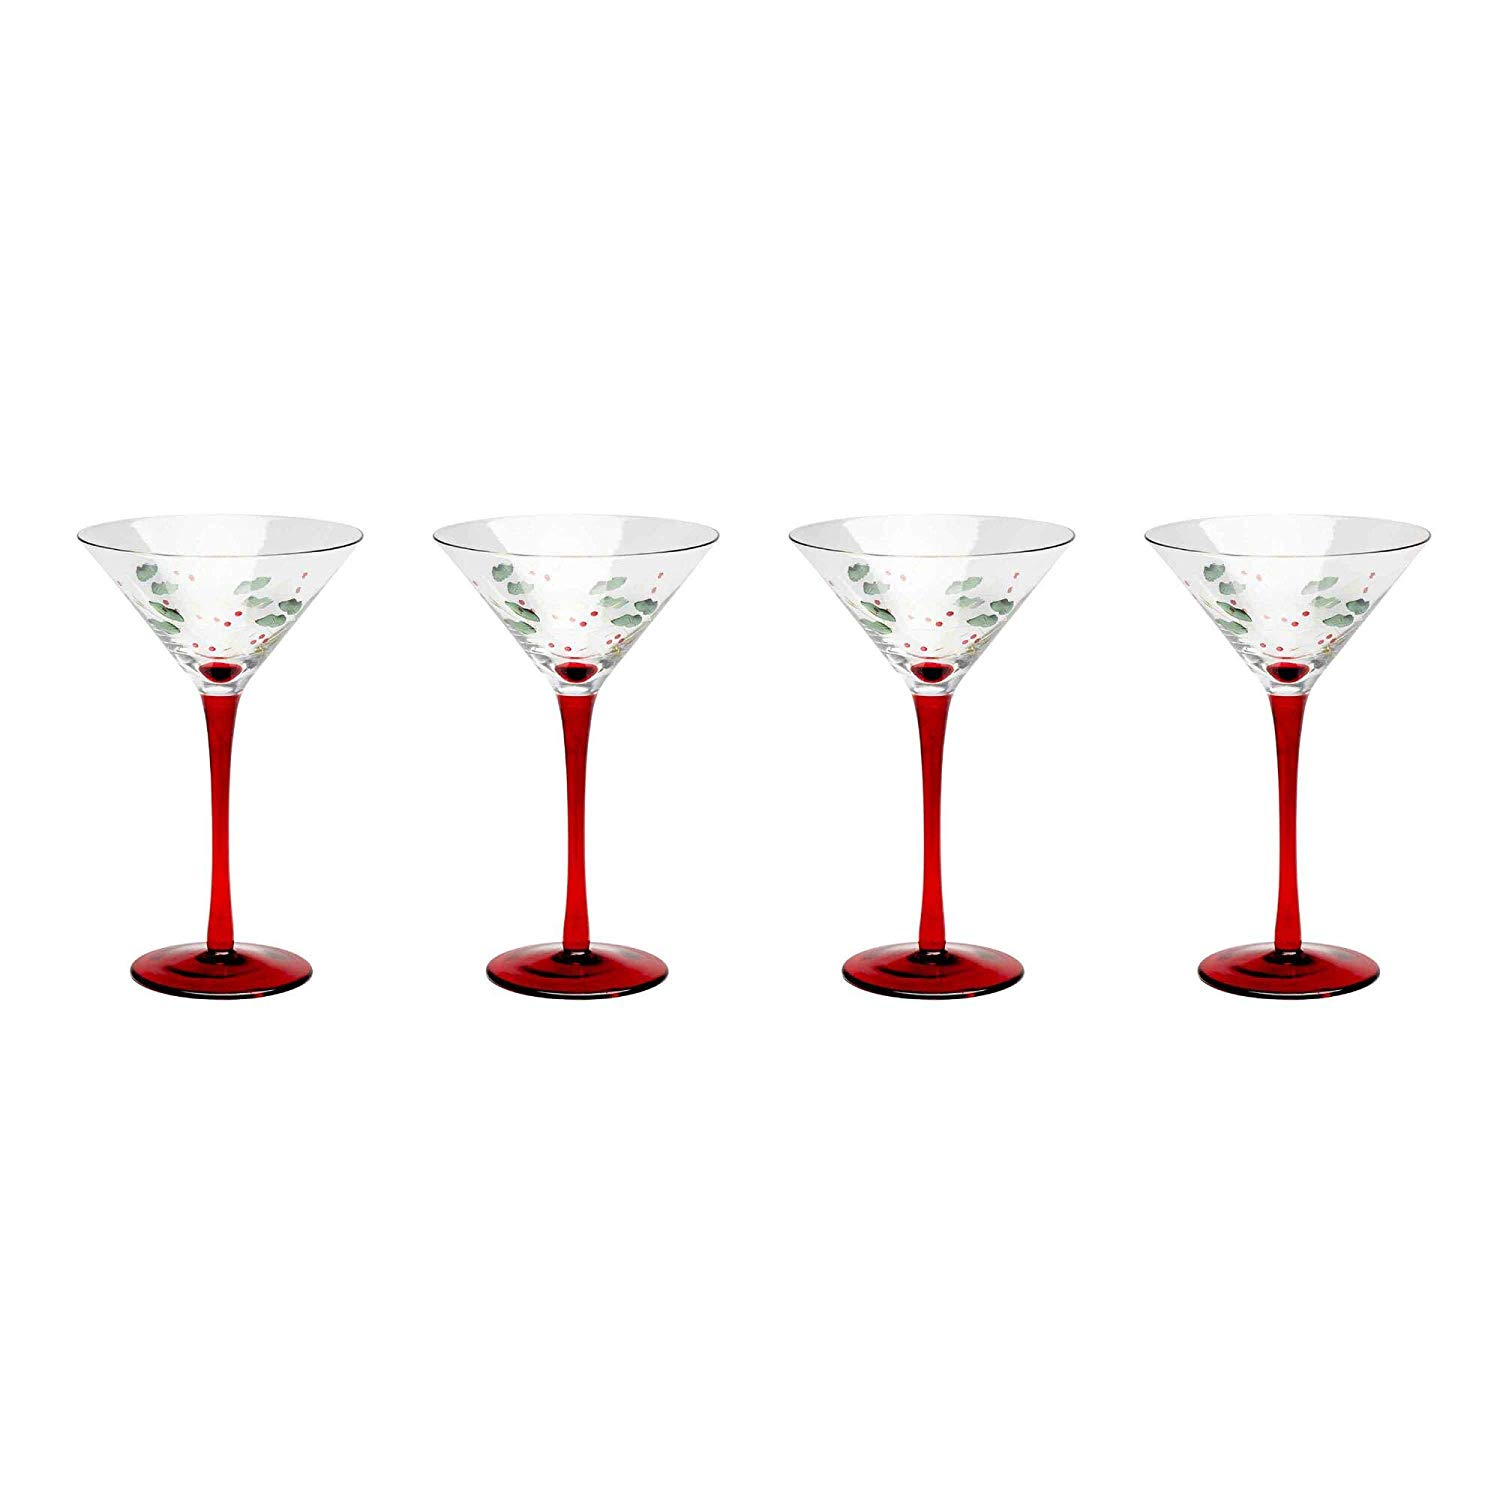 162962100e Get Quotations · Nantucket Home Holly Berry Christmas Holiday Red Stem  Martini Glasses